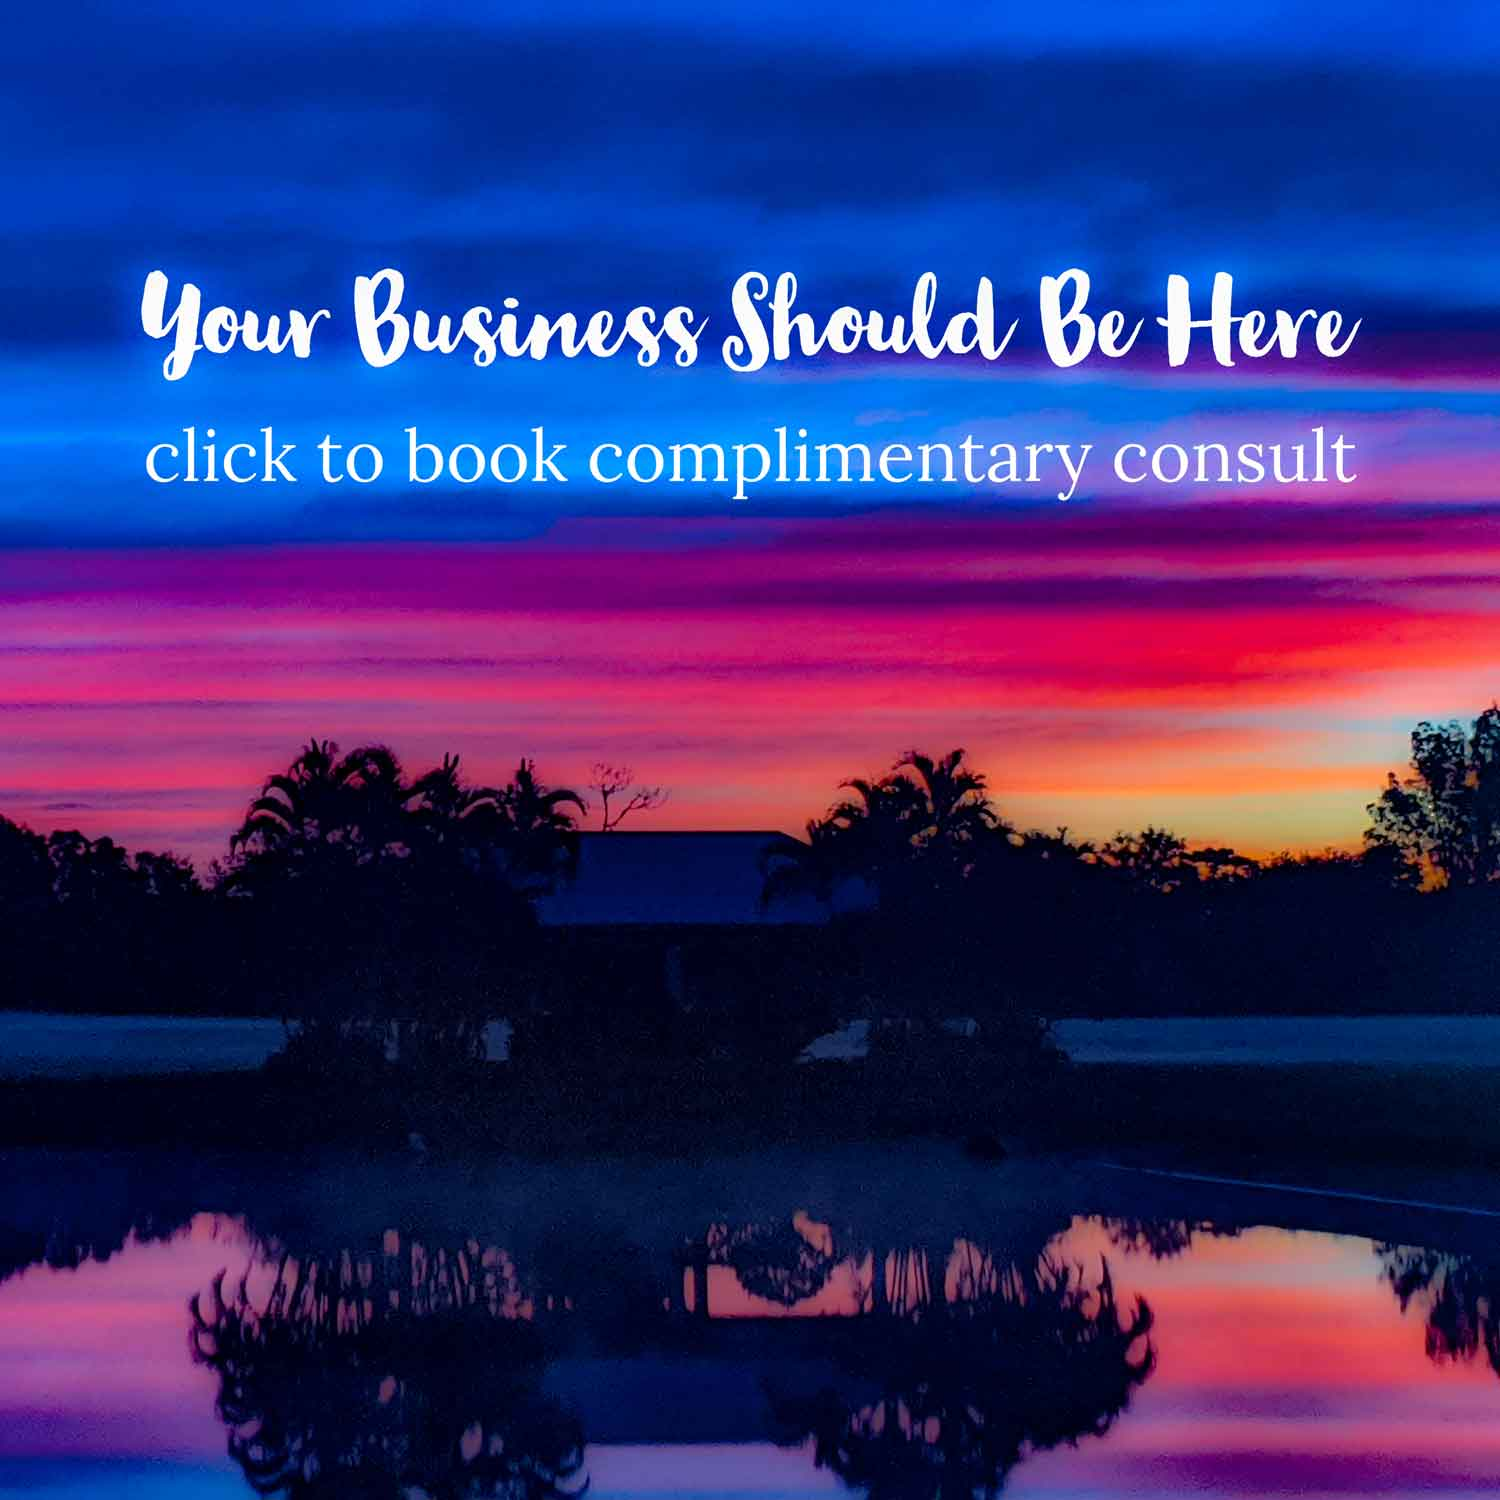 Ready For Your Complimentary Consult?